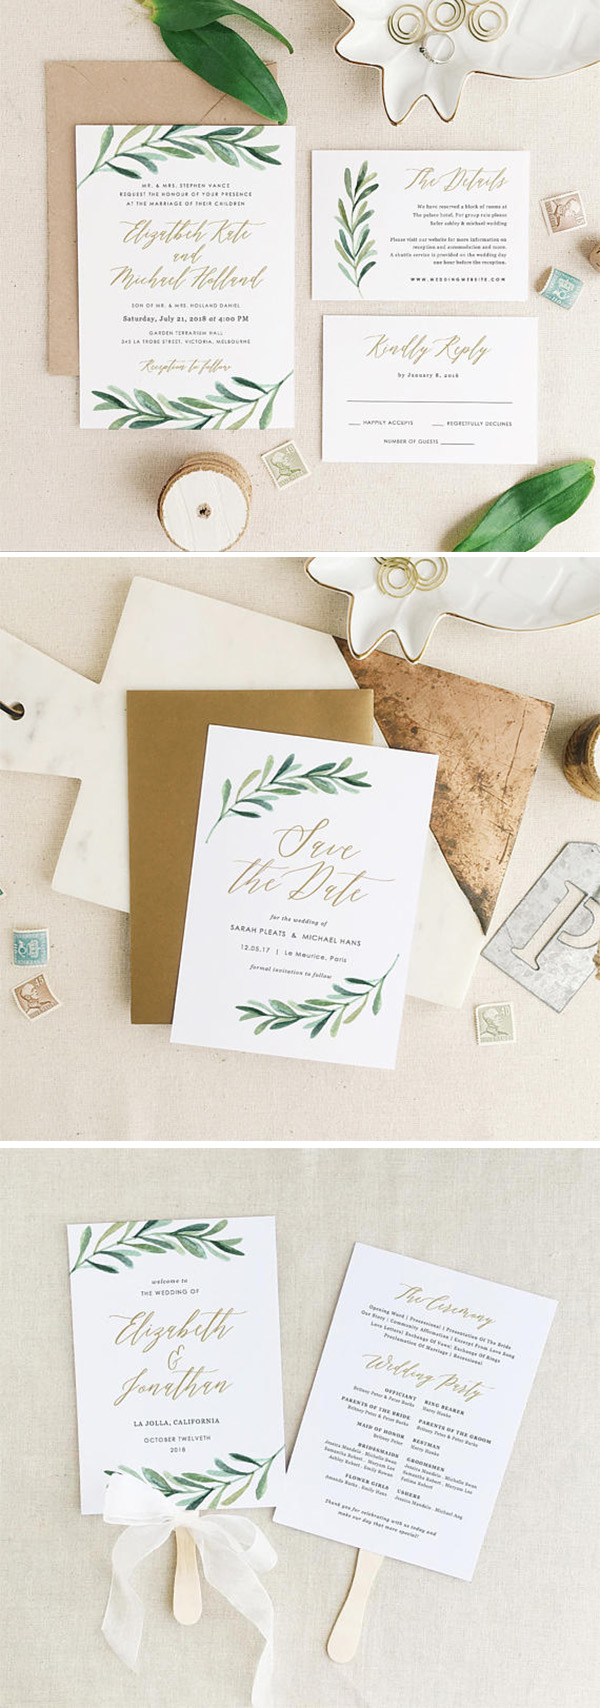 10 Hot Wedding Invitation Trends You Need to Know for 2018 ...